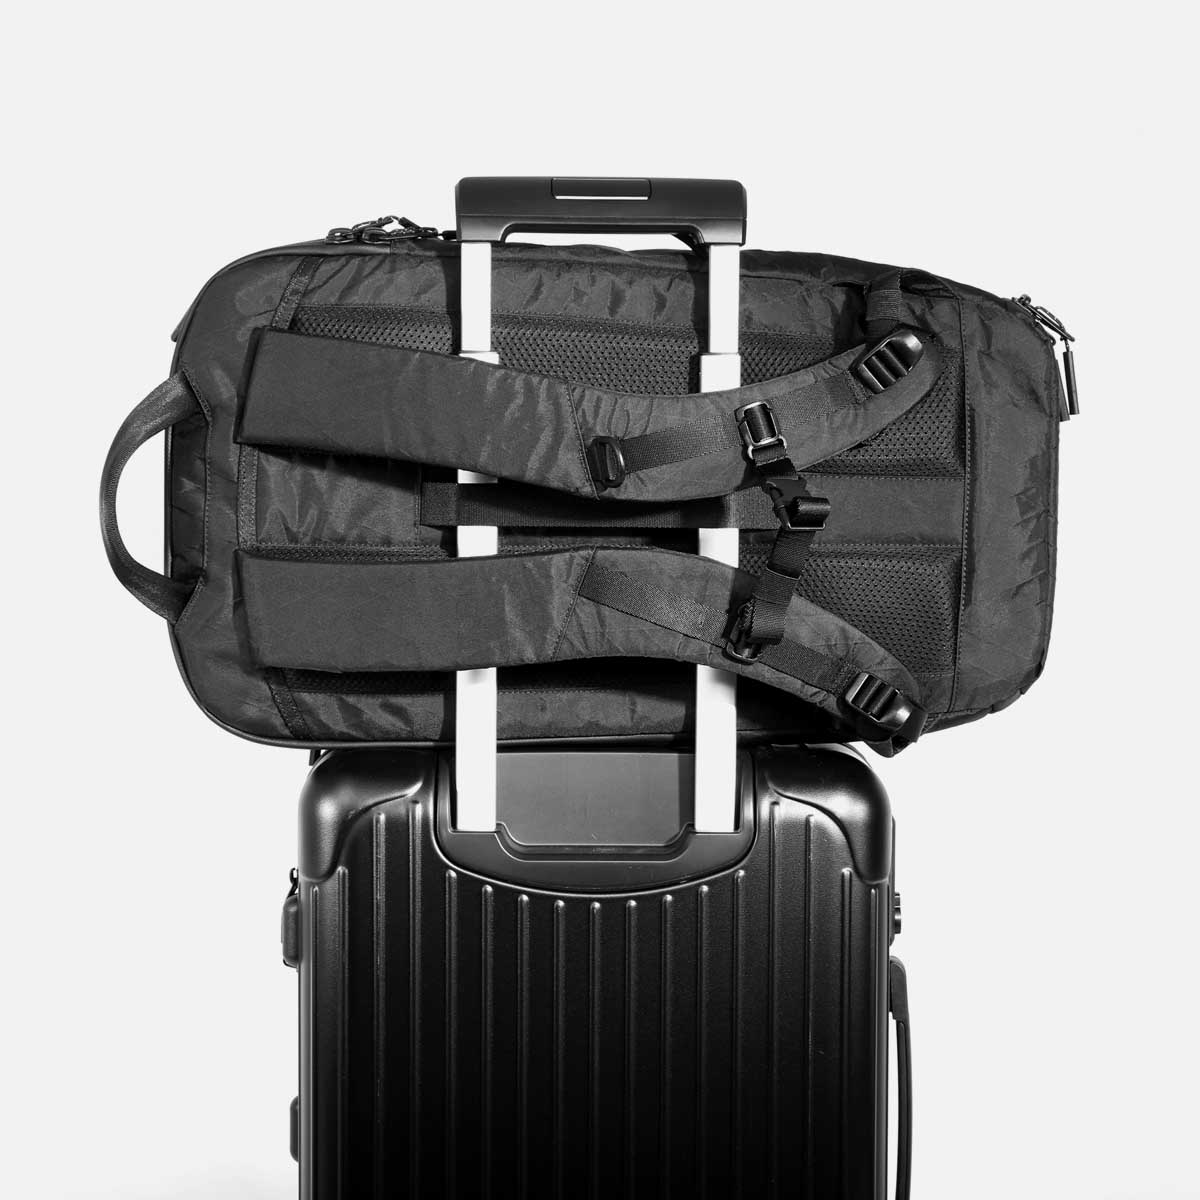 aer10011_dp2xpac_luggage.jpg